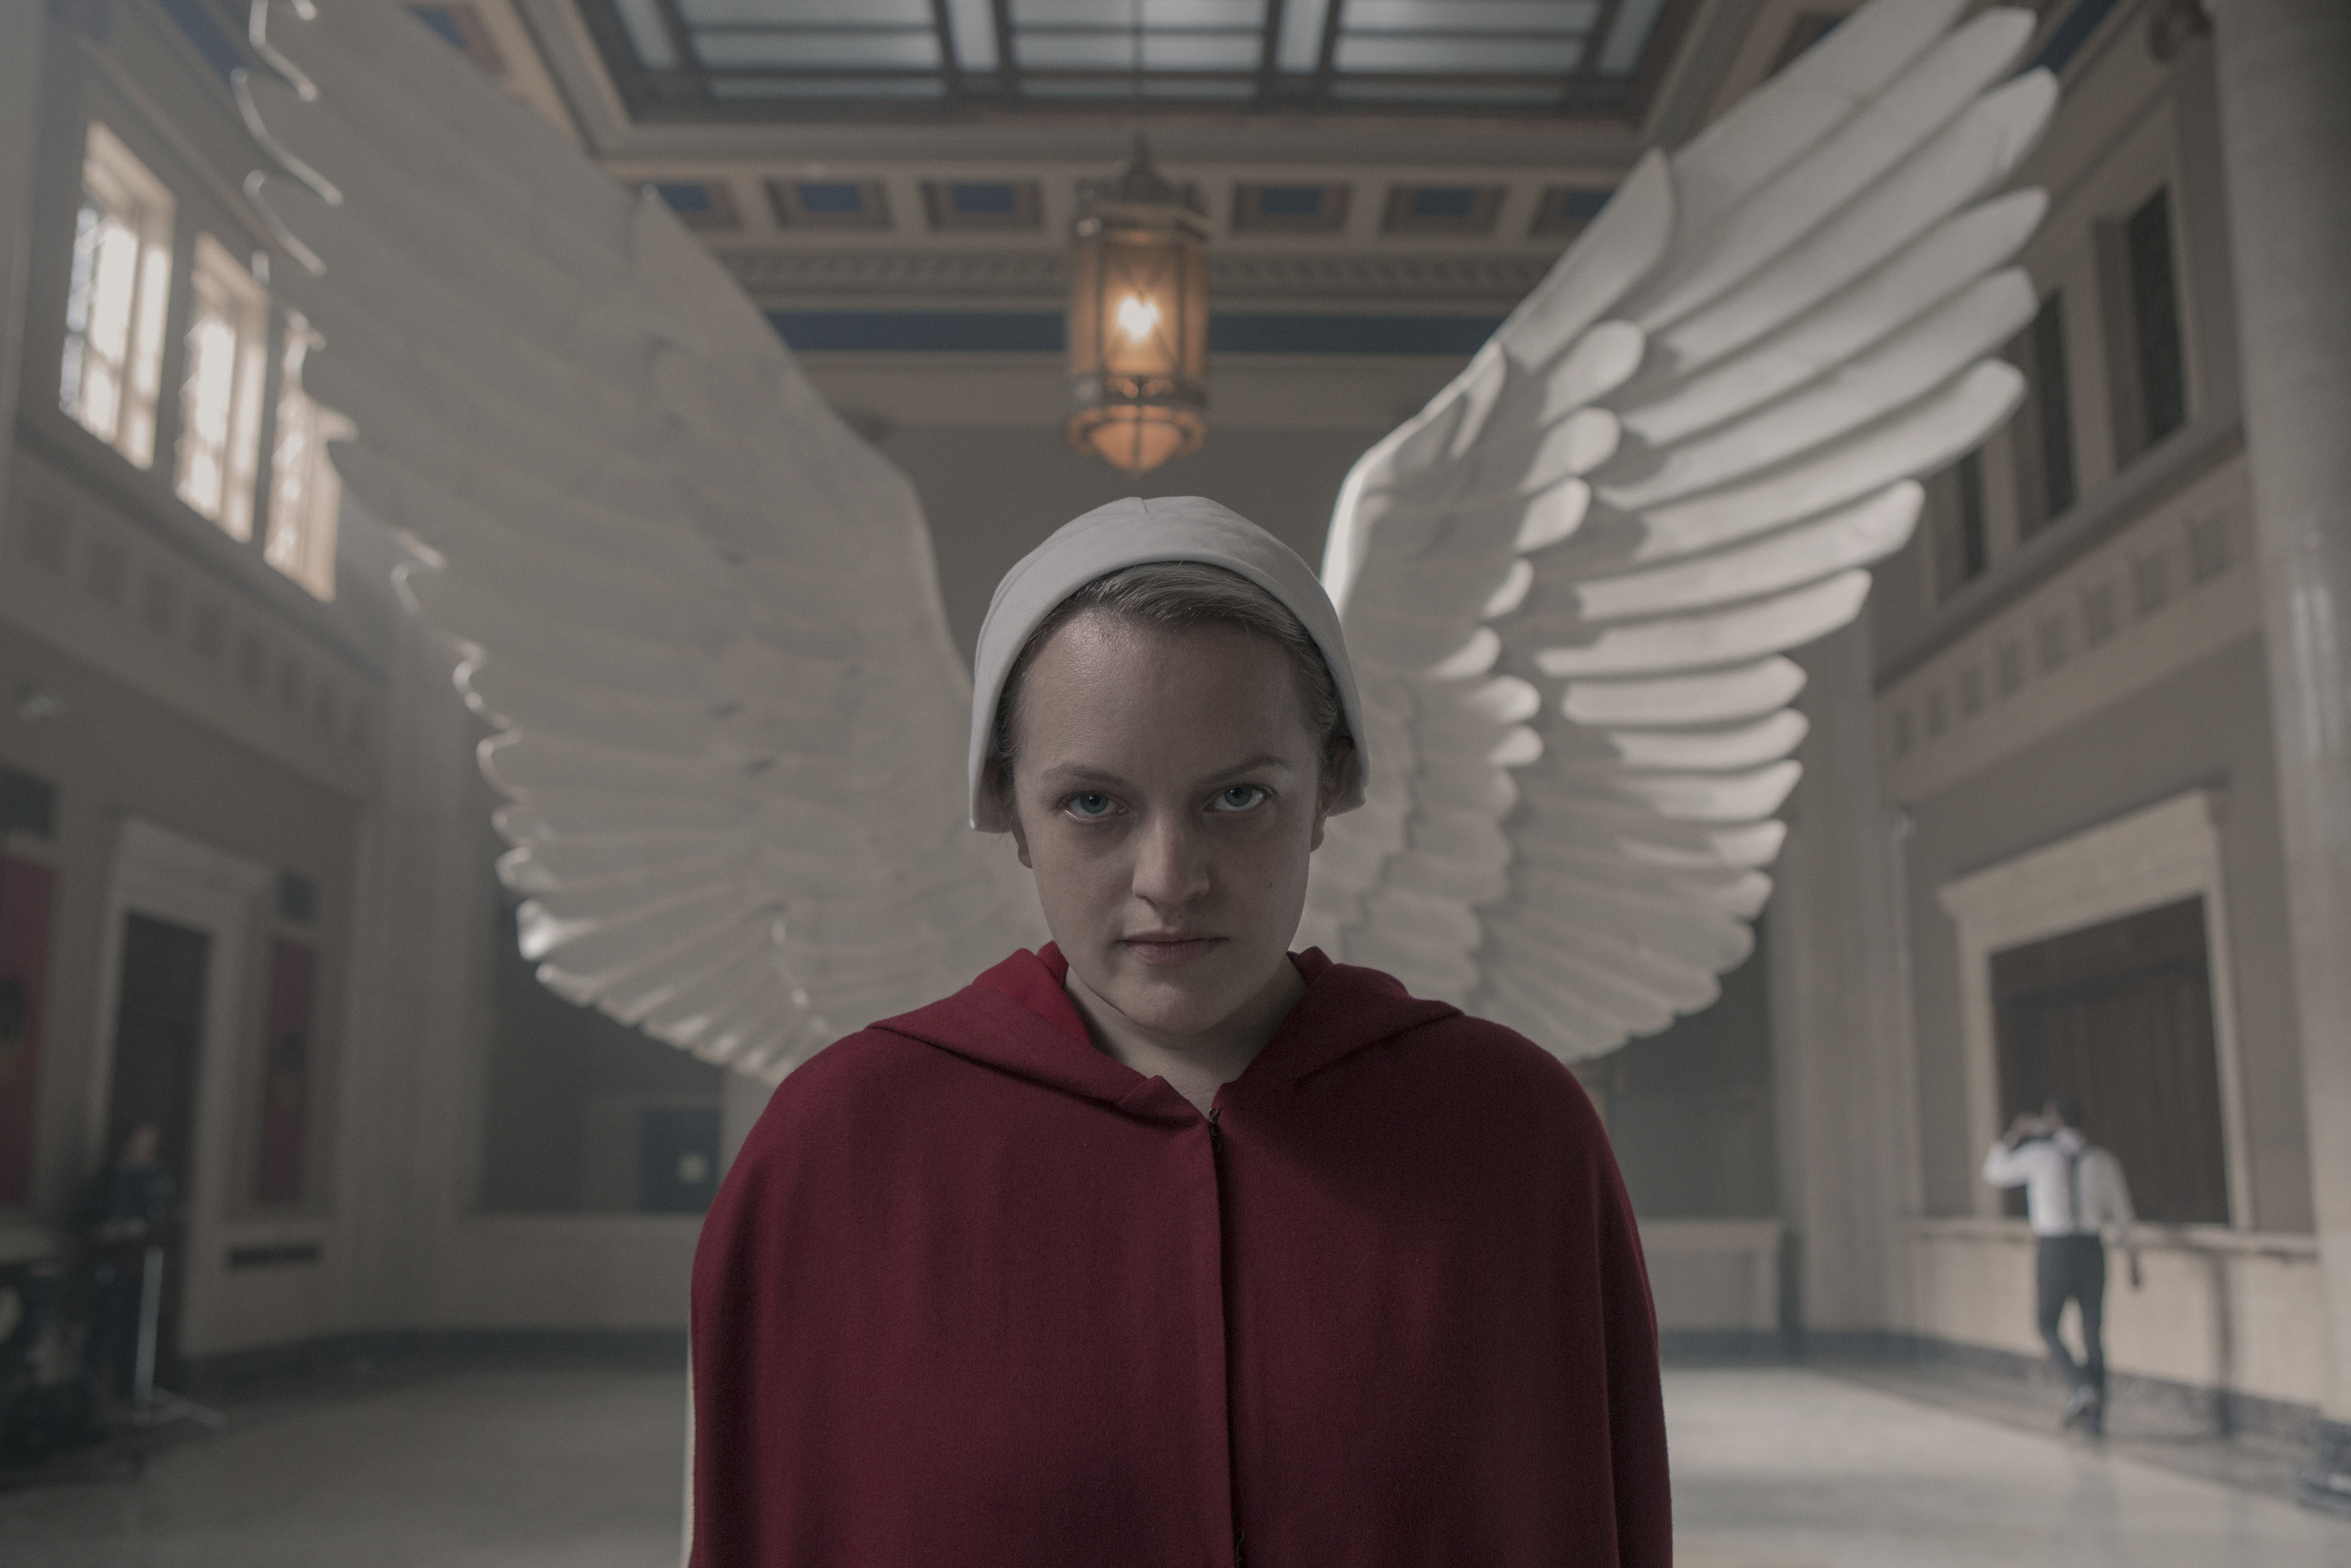 The Handmaid's Tale --  Household  - Episode 306 -- June accompanies the Waterfords to Washington D.C., where a powerful family offers a glimpse of the future of Gilead. June makes an important connection as she attempts to protect Nichole. June (Elisabeth Moss), shown.